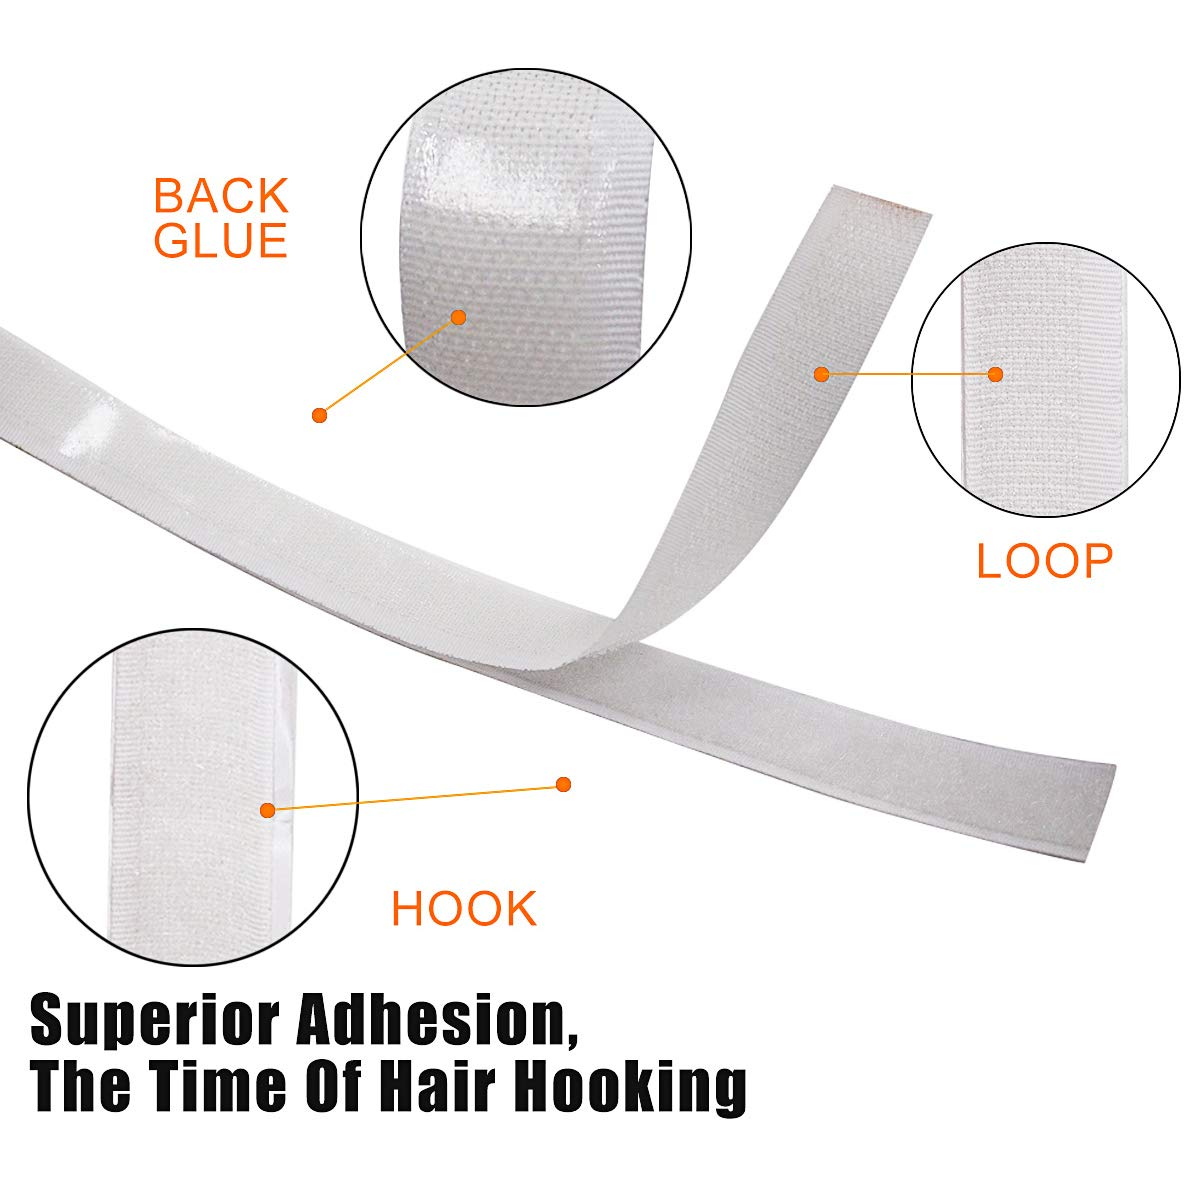 3//4 INCH, White Jackwood 36 Feet Self Adhesive Hook and Loop Tape Roll Sticky Back Strip Adhesive Backed Fabric Fastener Mounting Tape for Picture and Tools Hanging Pedal Board Fastening